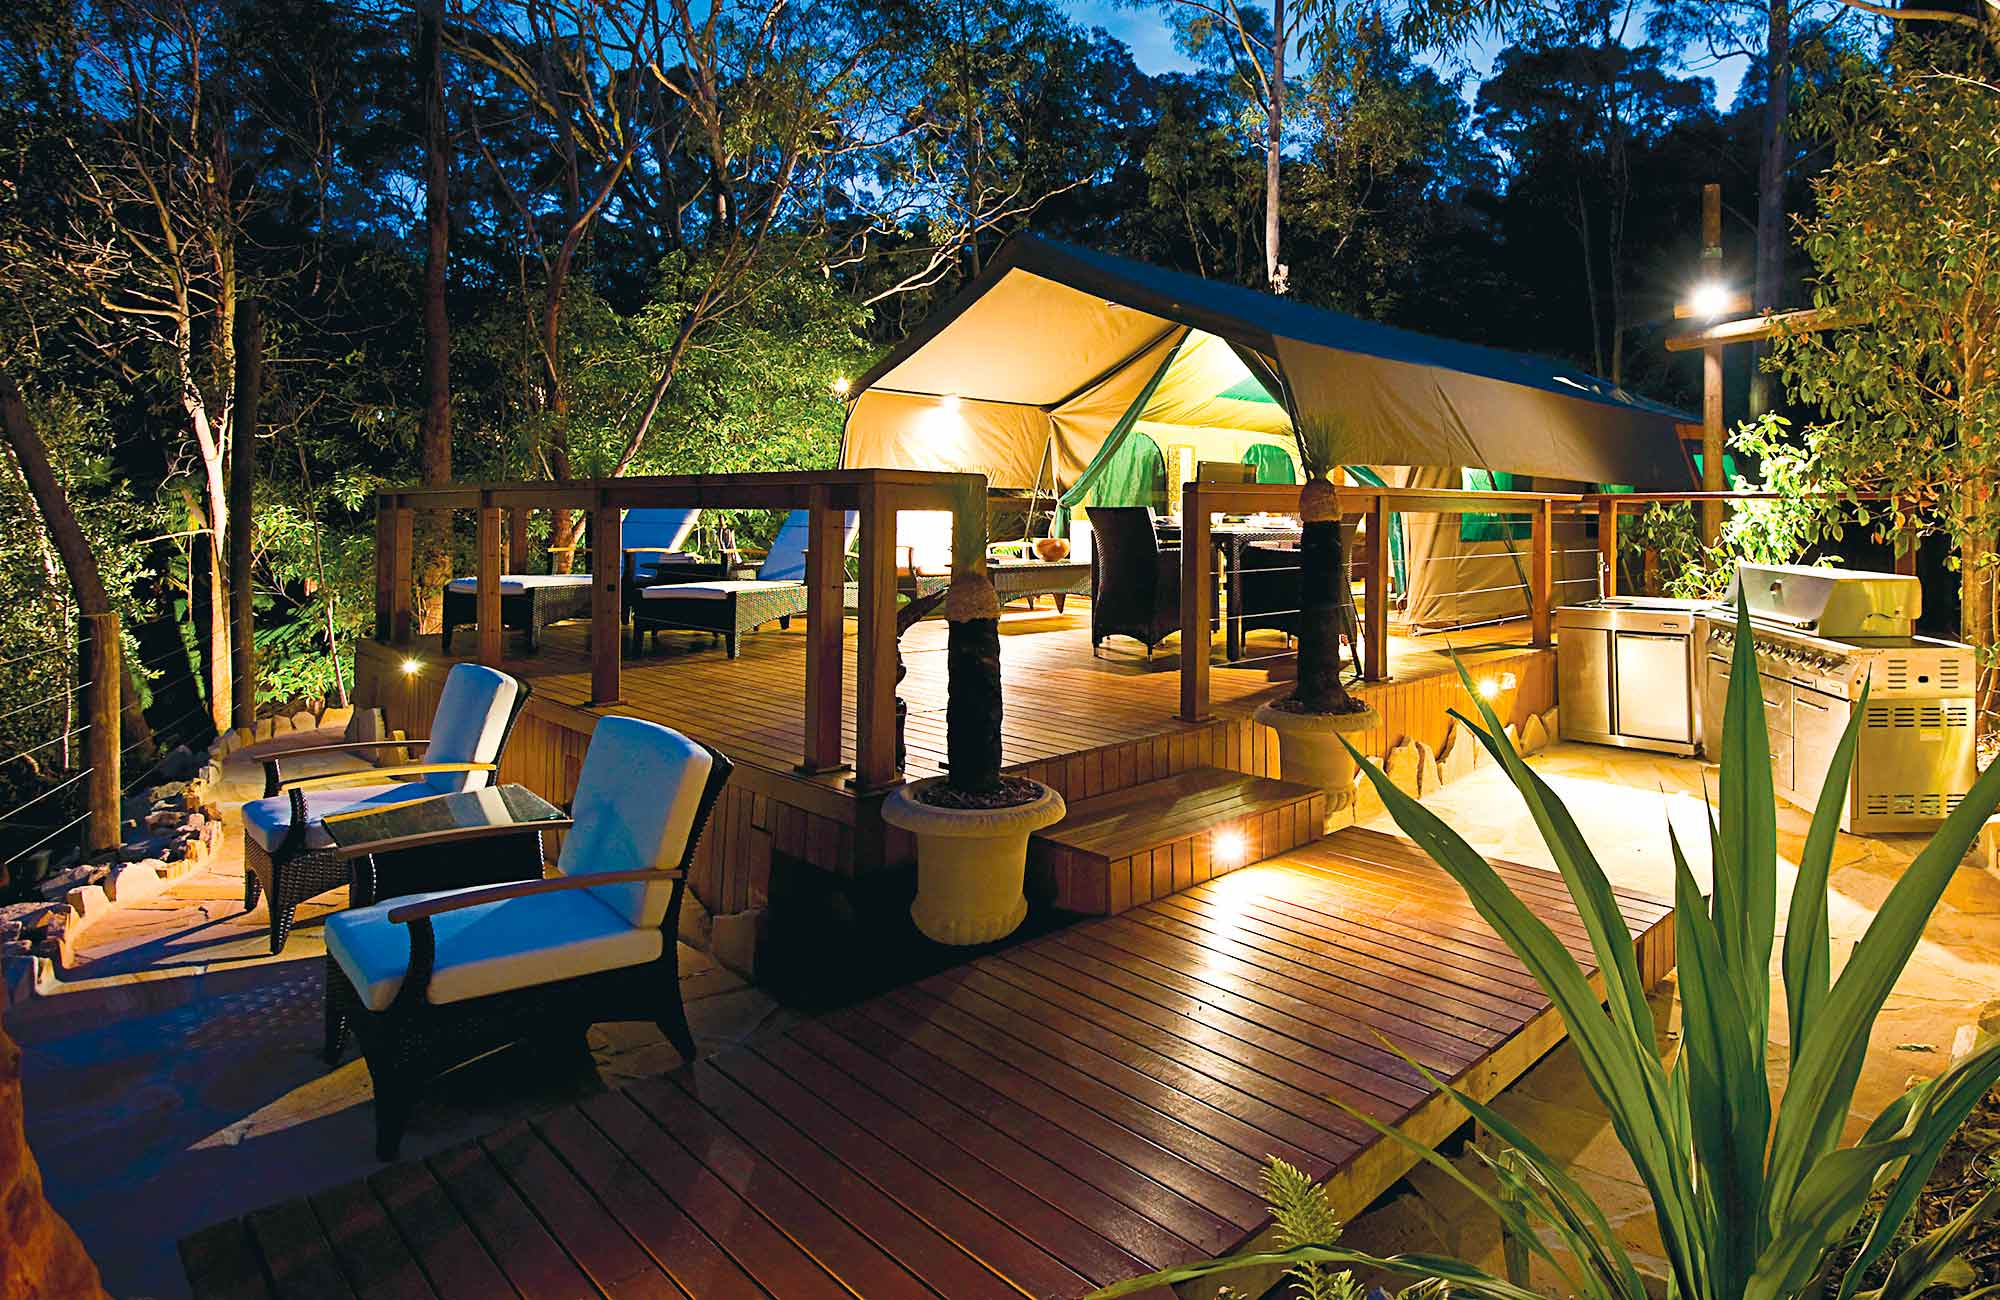 Lane Cove Holiday Park - Tandara, Lane Cove National Park. Photo: OEH